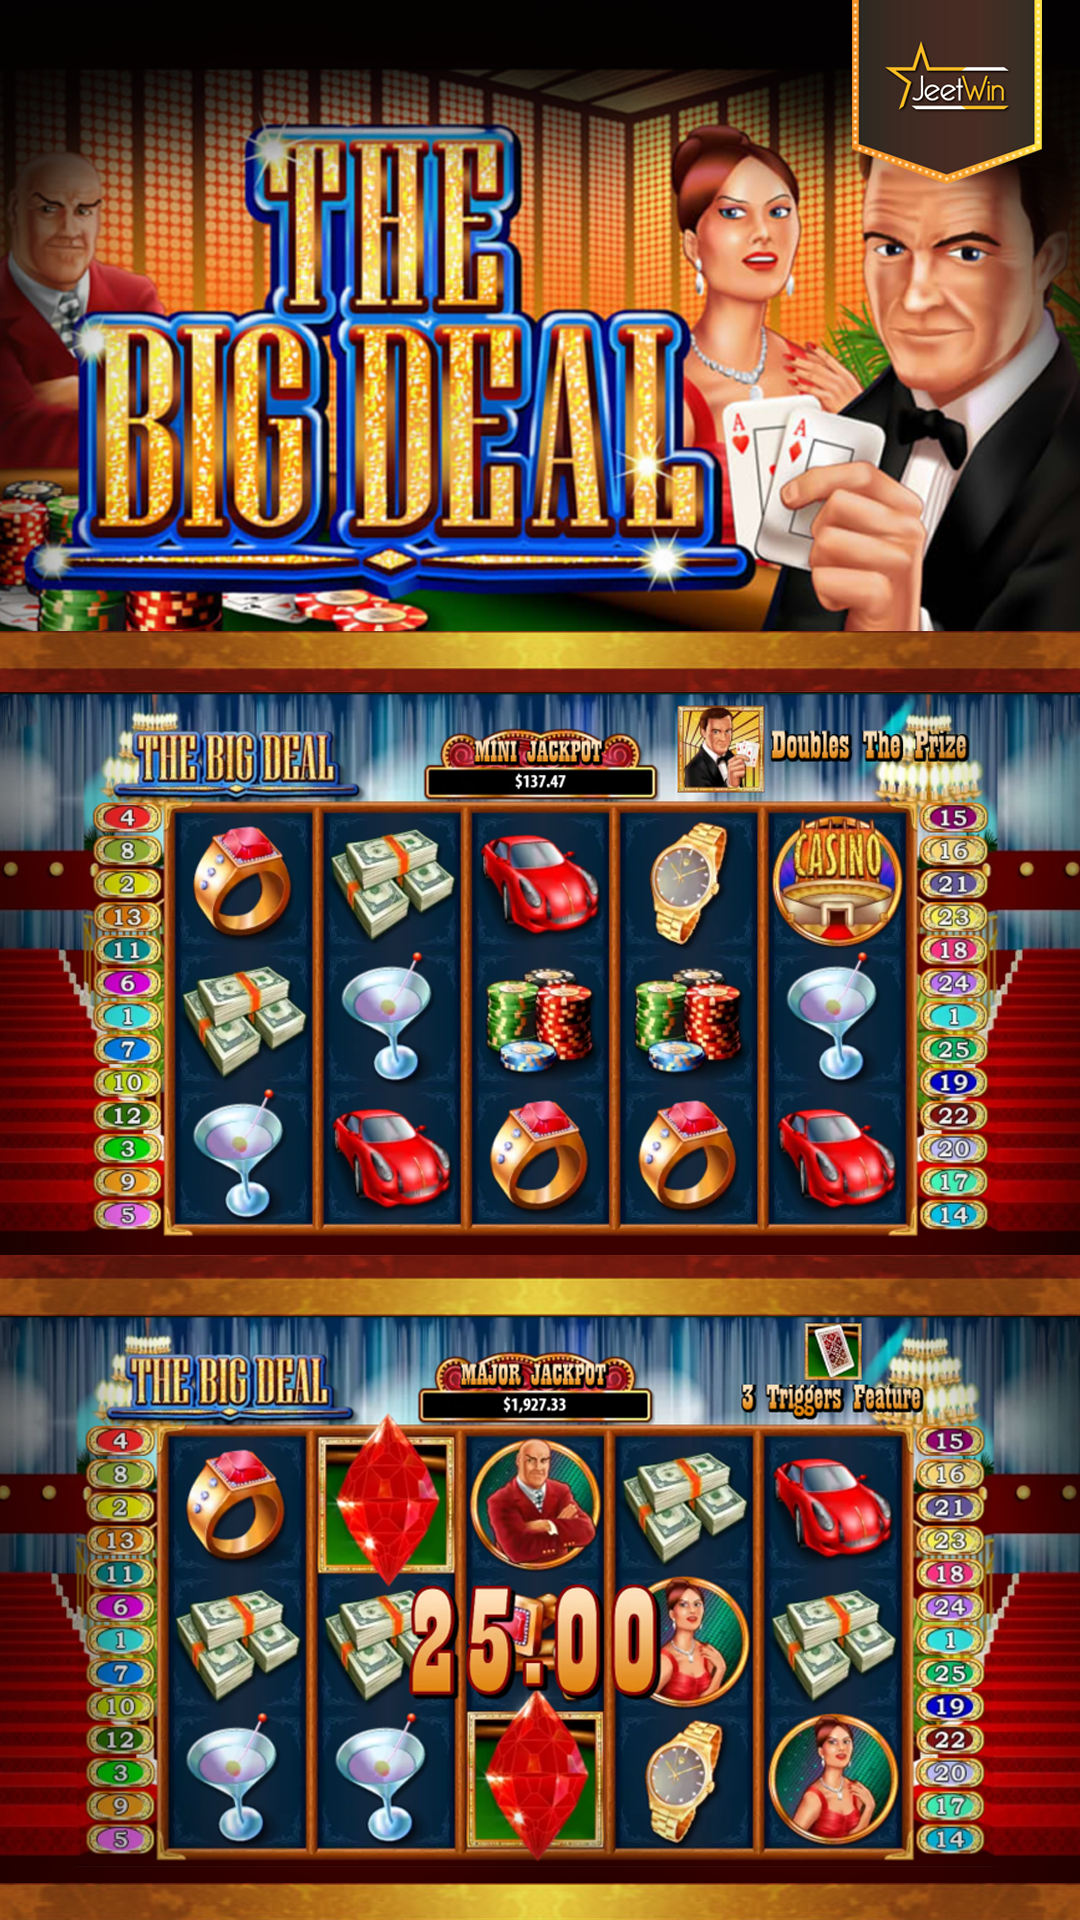 Win the Biggest Deal of Your Life. Play and Win Real Money